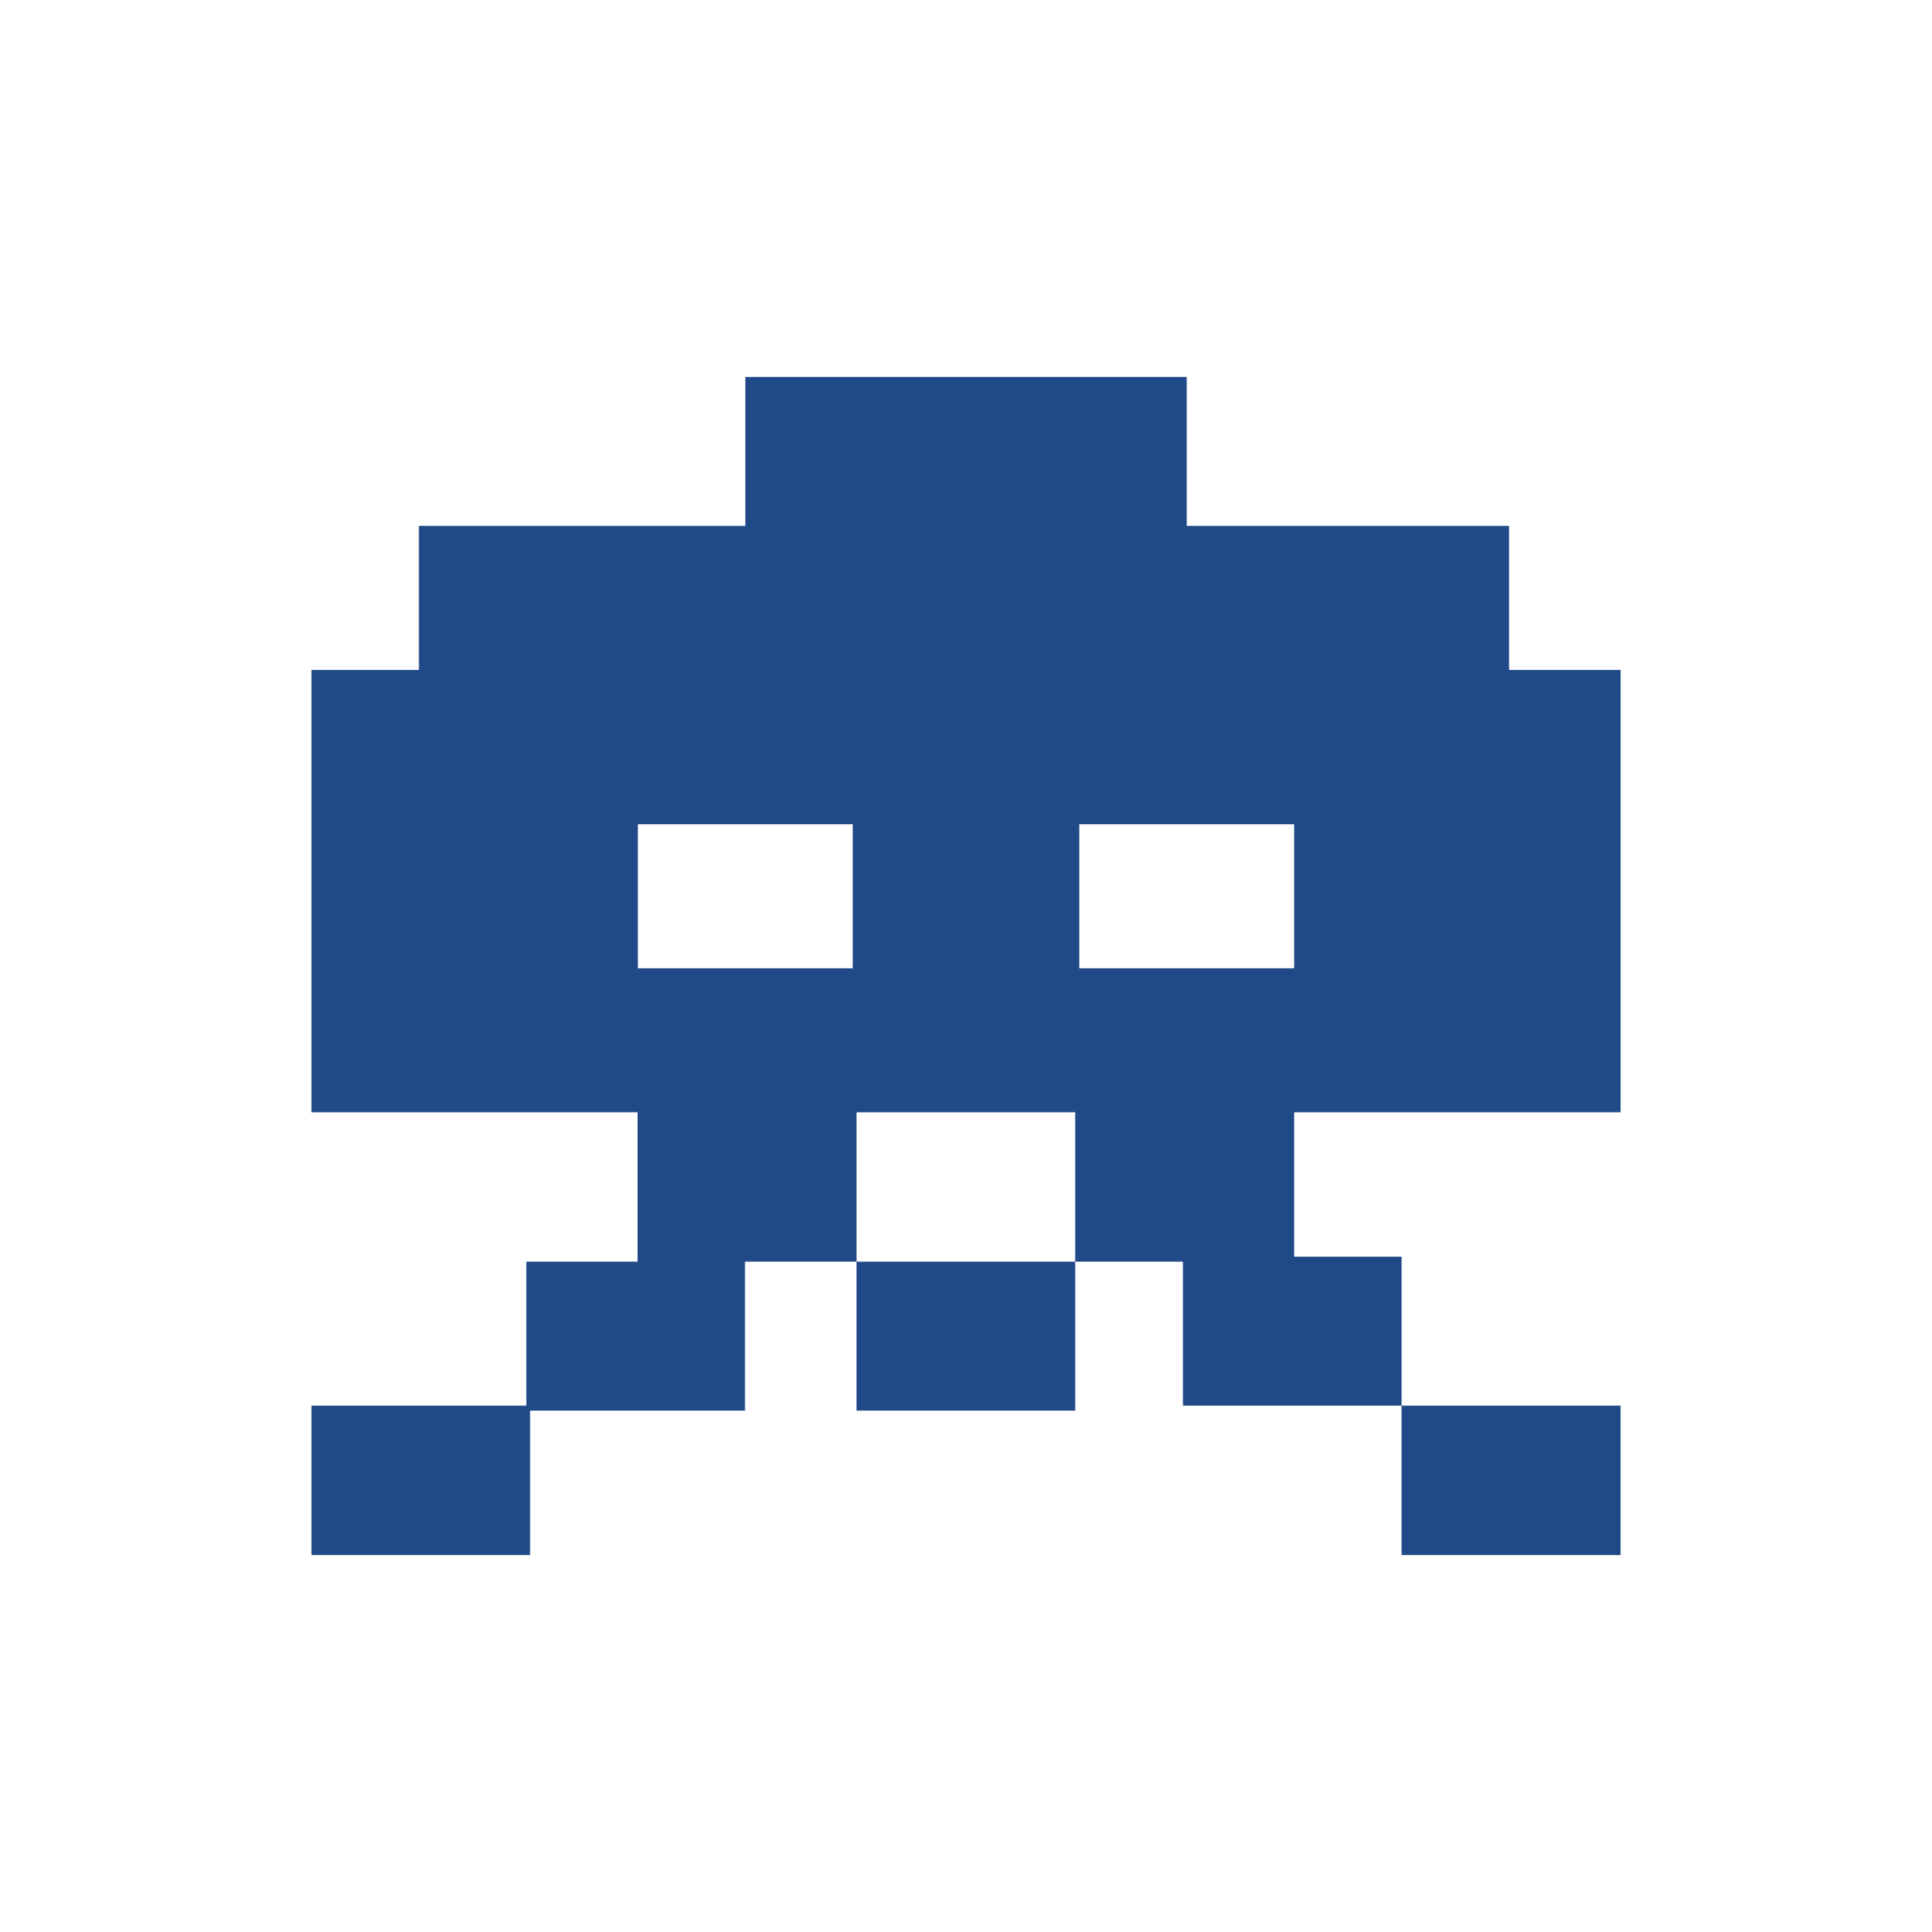 Space Invaders Transparent Picture PNG Image